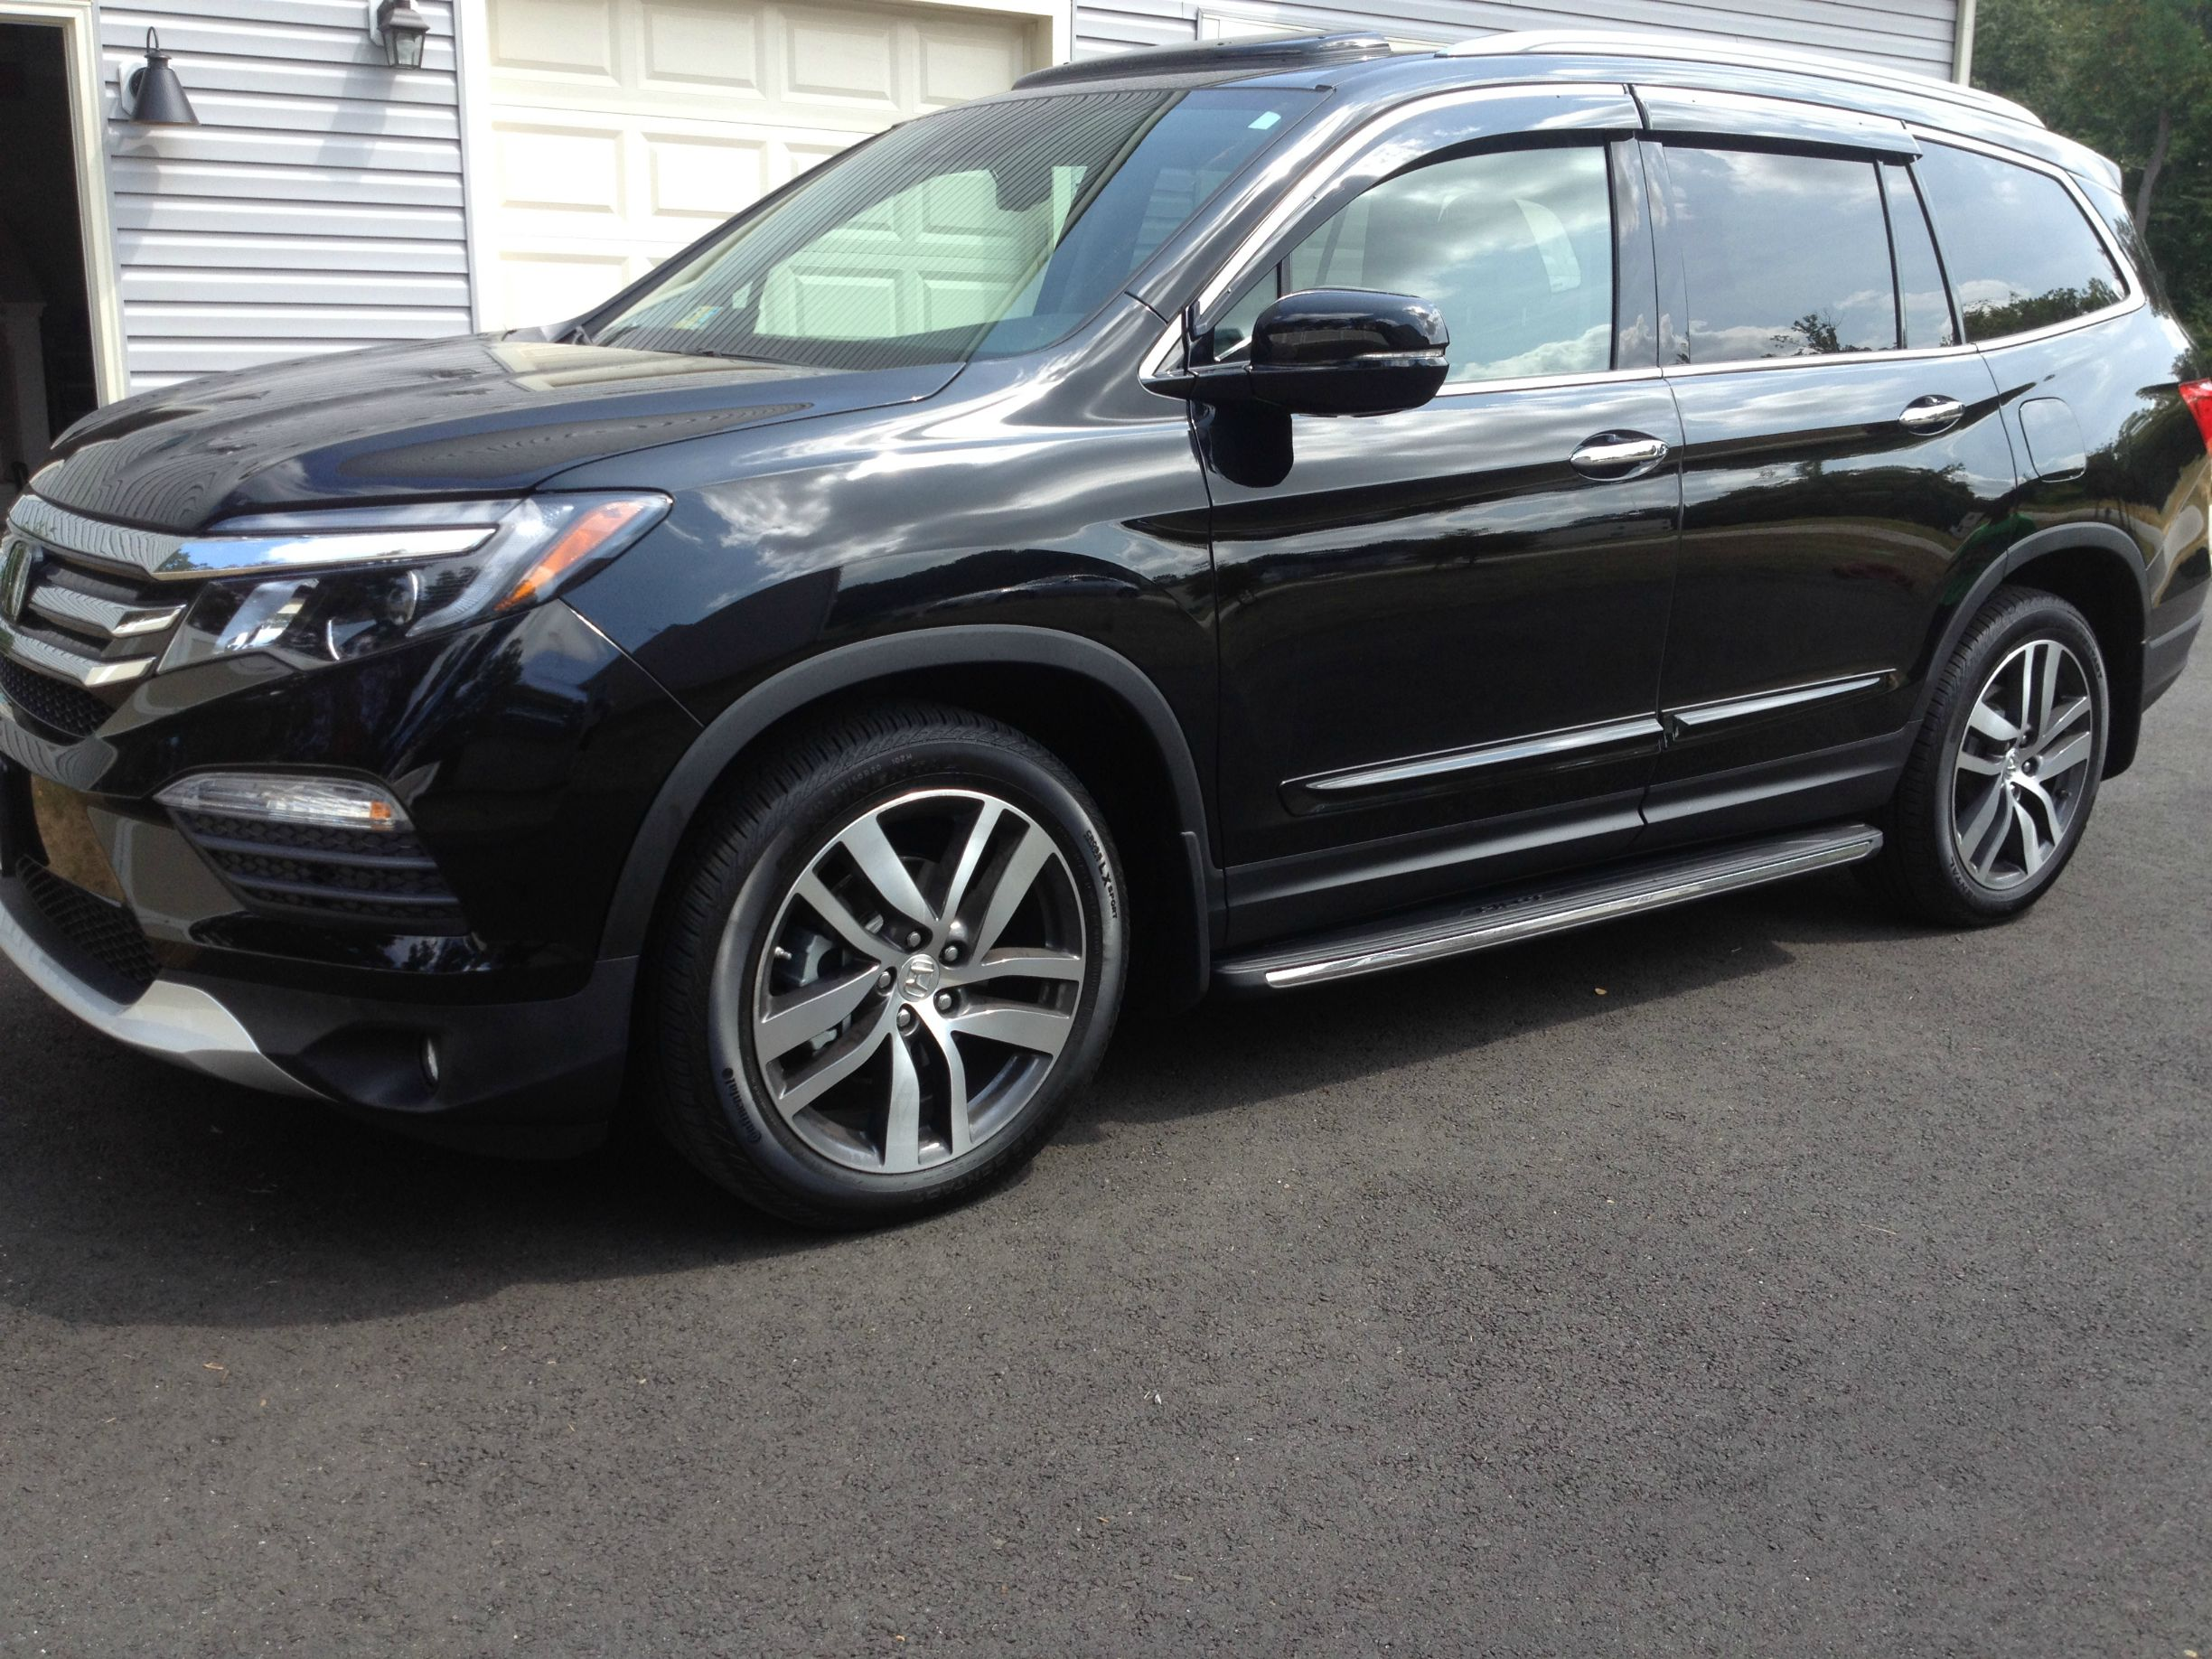 2016 honda pilot ex-l user manual